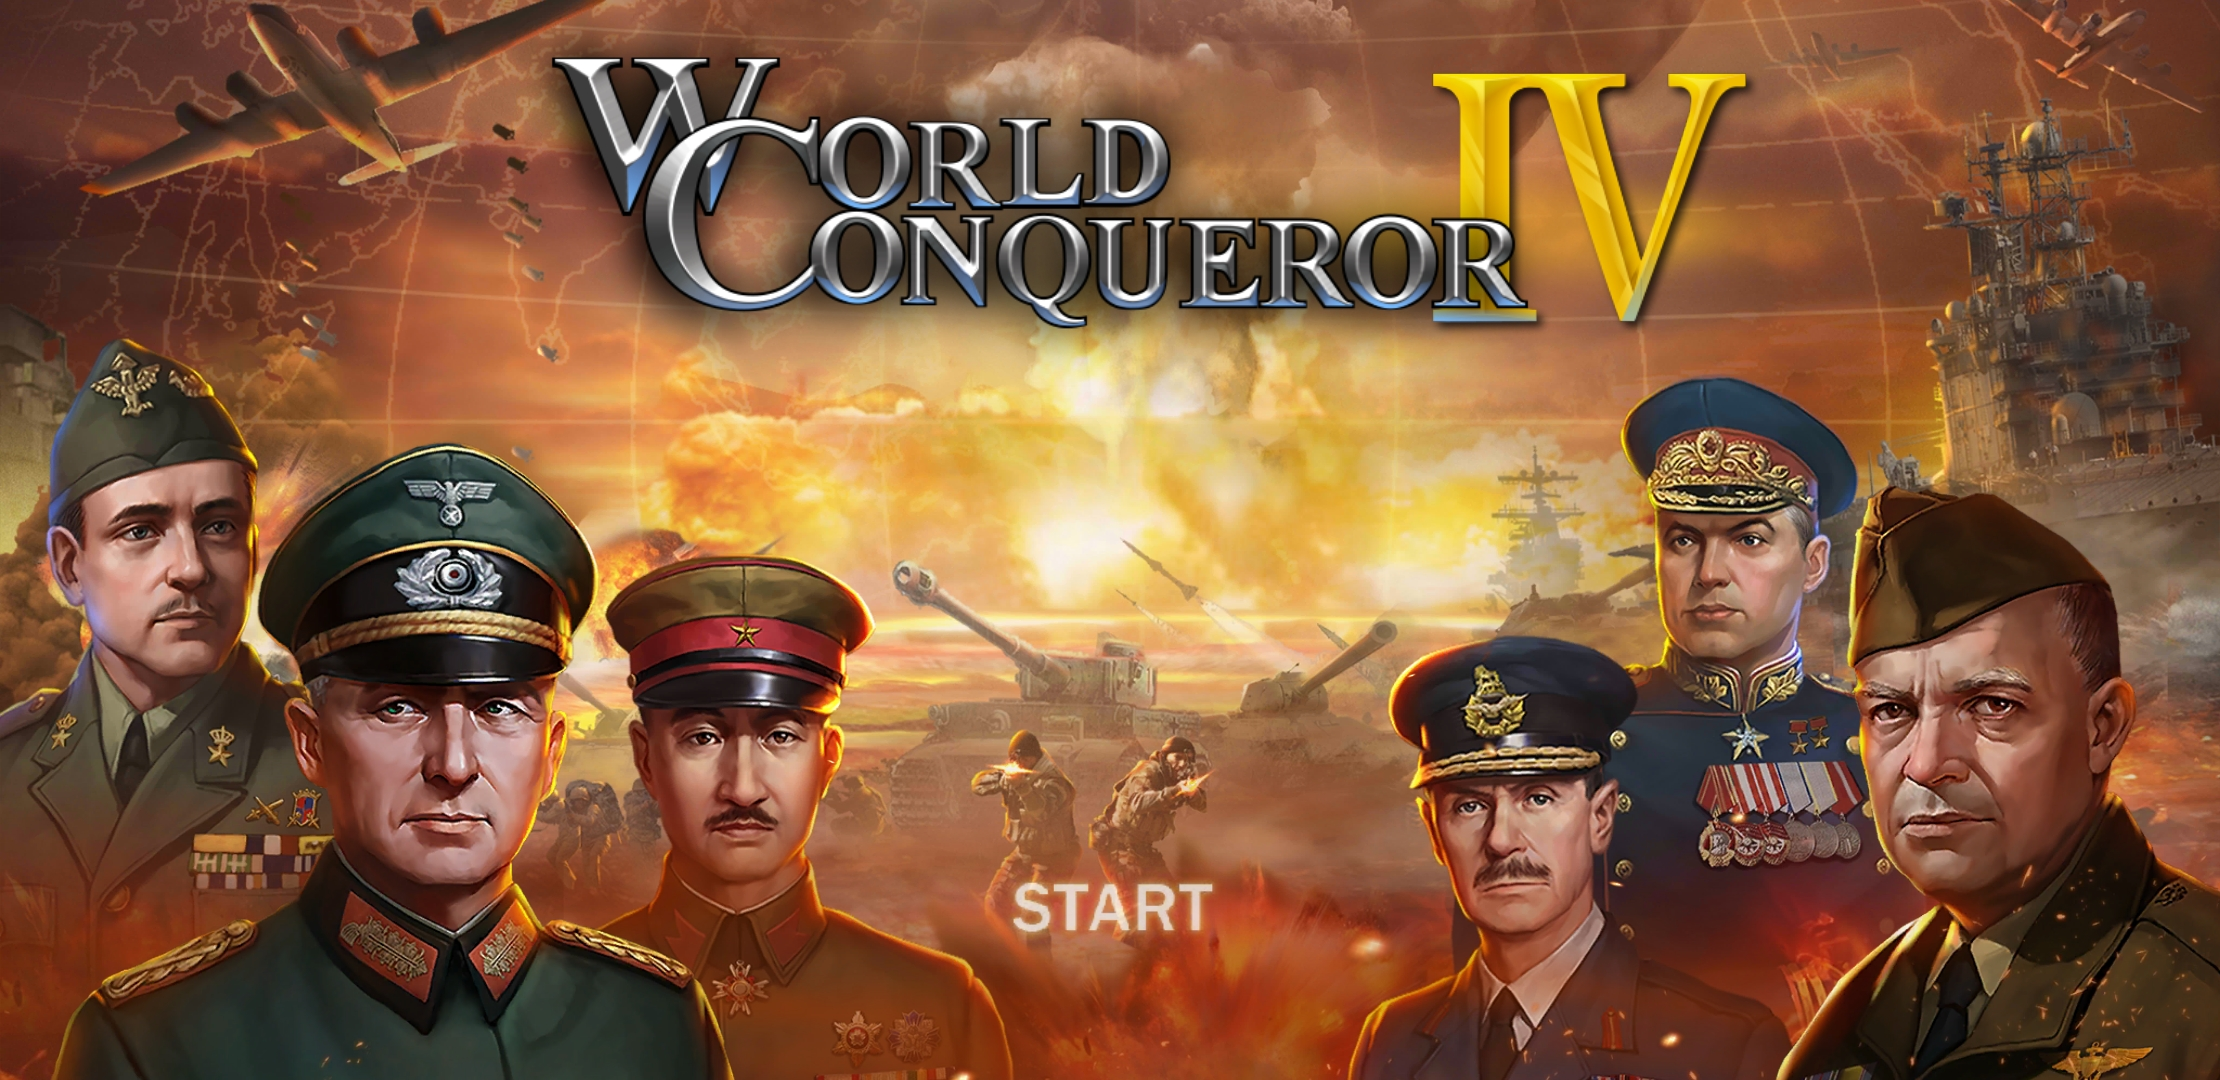 Deploy your troops, wage battles, and conquer your foes in World Conqueror 4, a historical WWII strategy game [Sponsored]